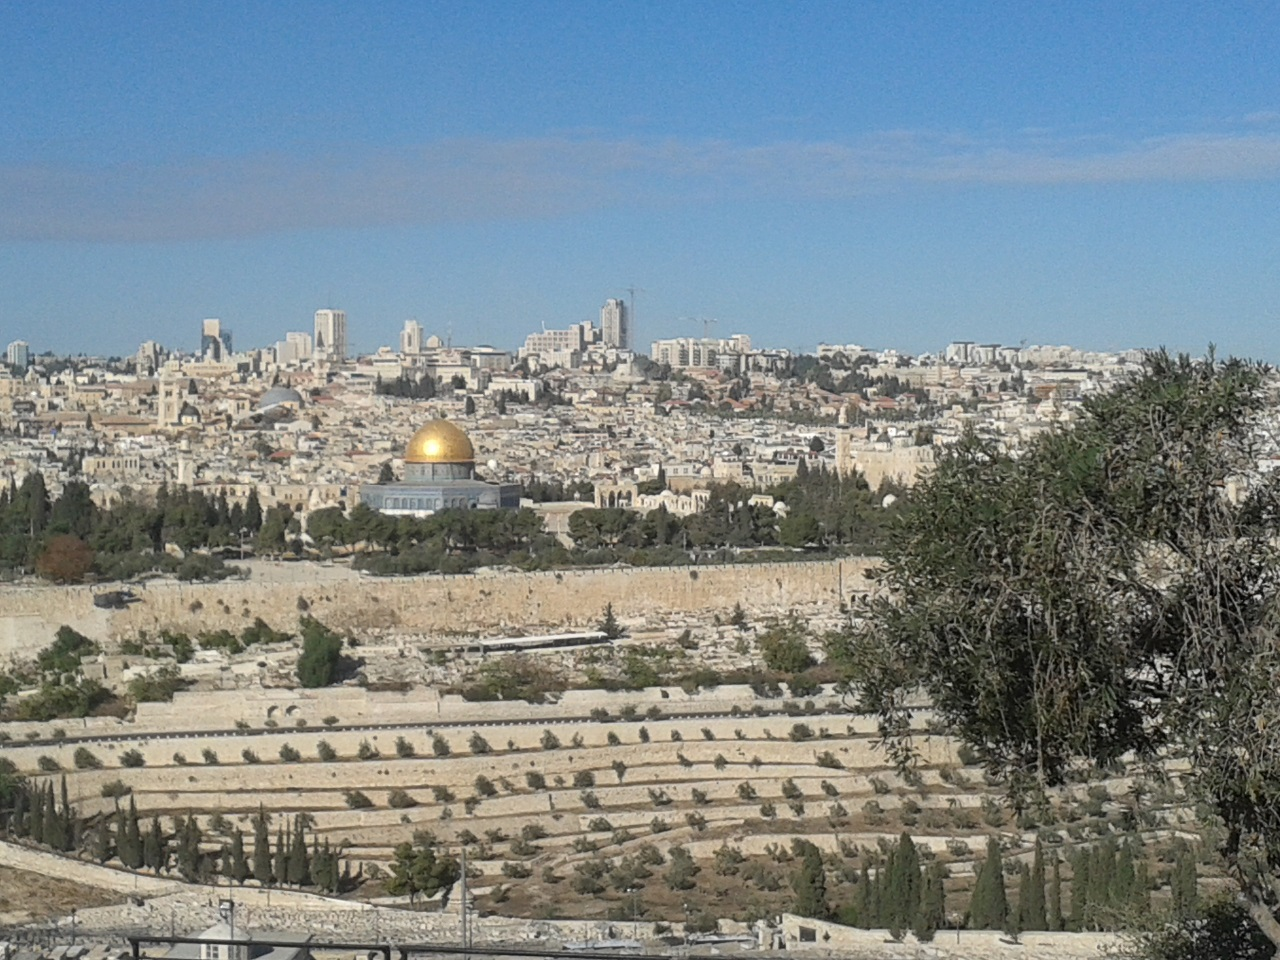 Jerusalem – focus of conflict. But God calls us to pray for the peace of the city (Psalm 122:6).